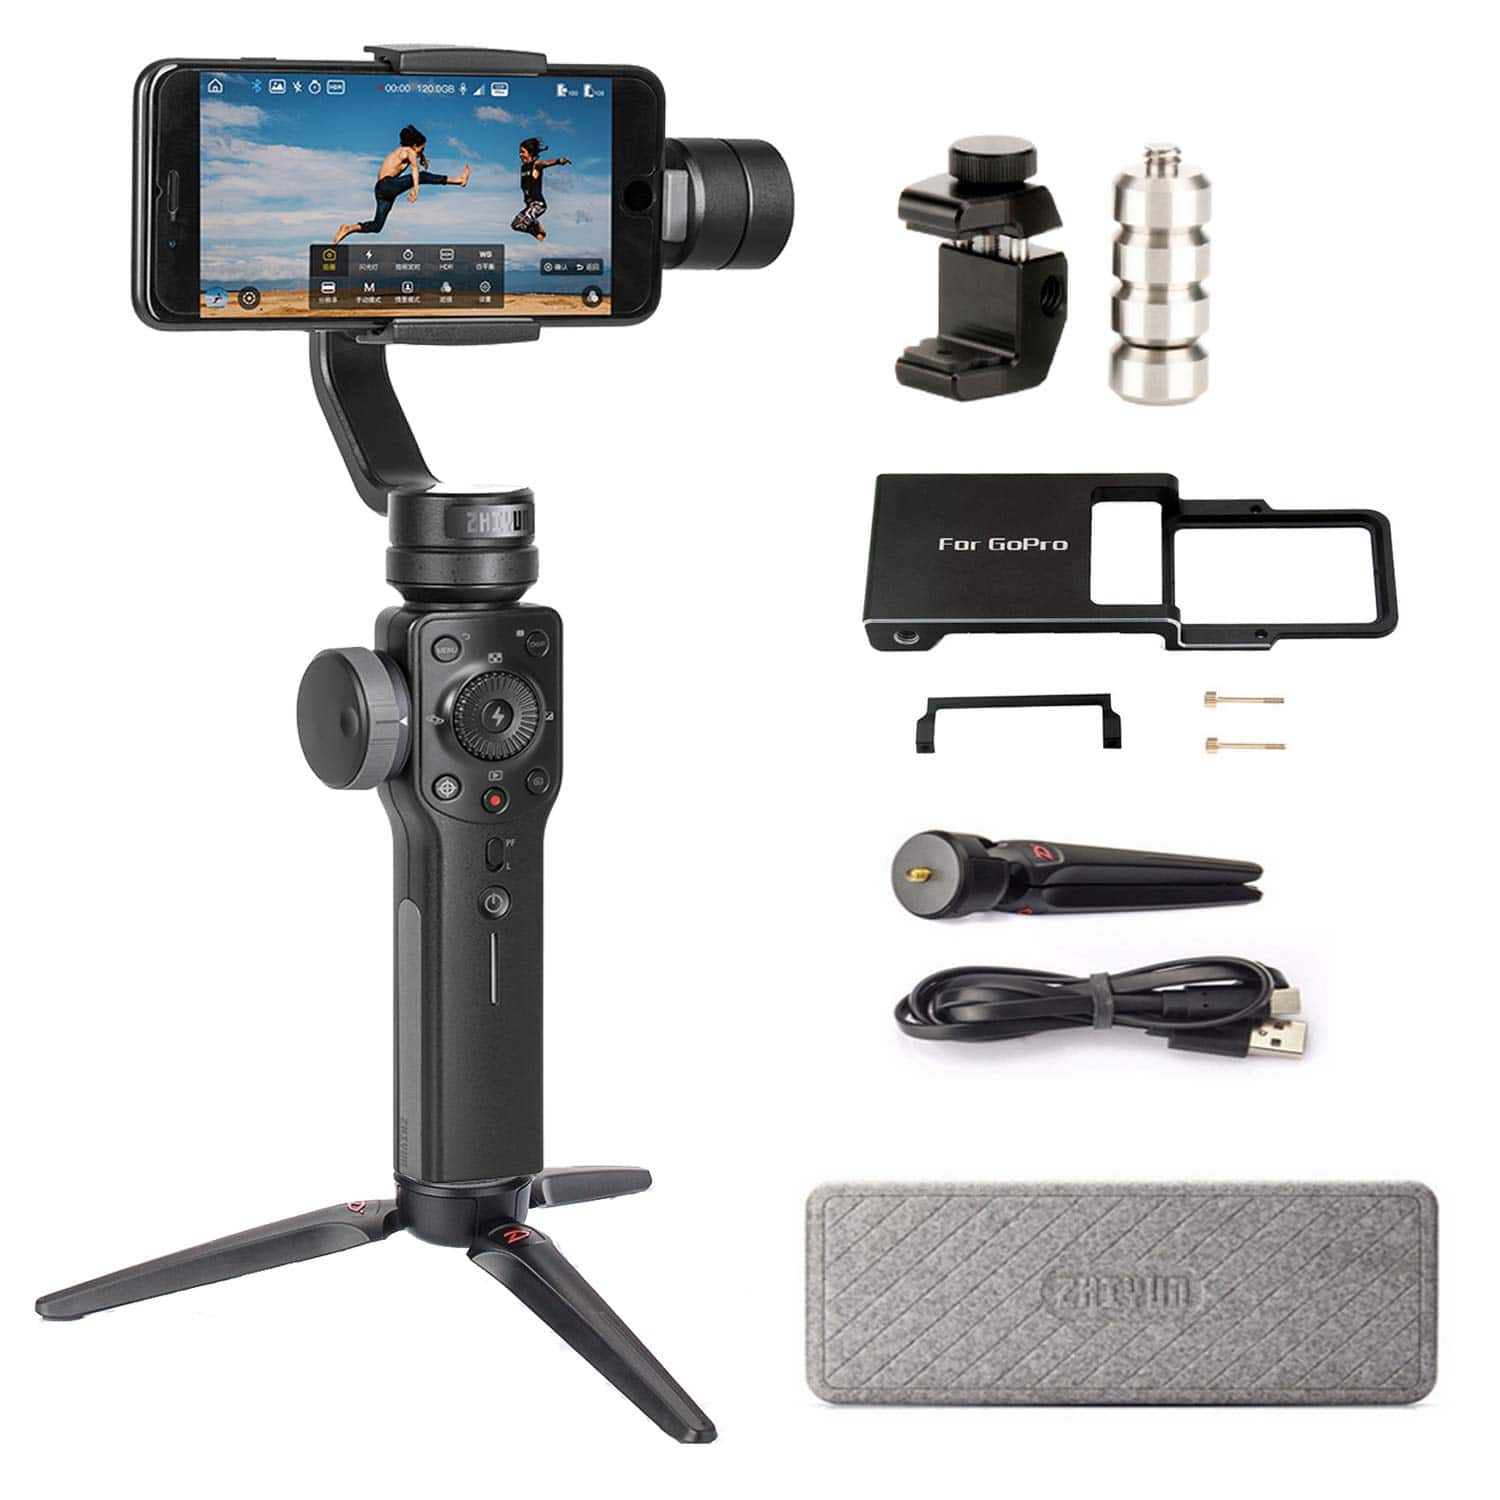 Zhiyun Smooth 4 Handheld Smartphone Gimbal Stabilizer Set for Smartphones - $103.20 AC FS w/ Prime